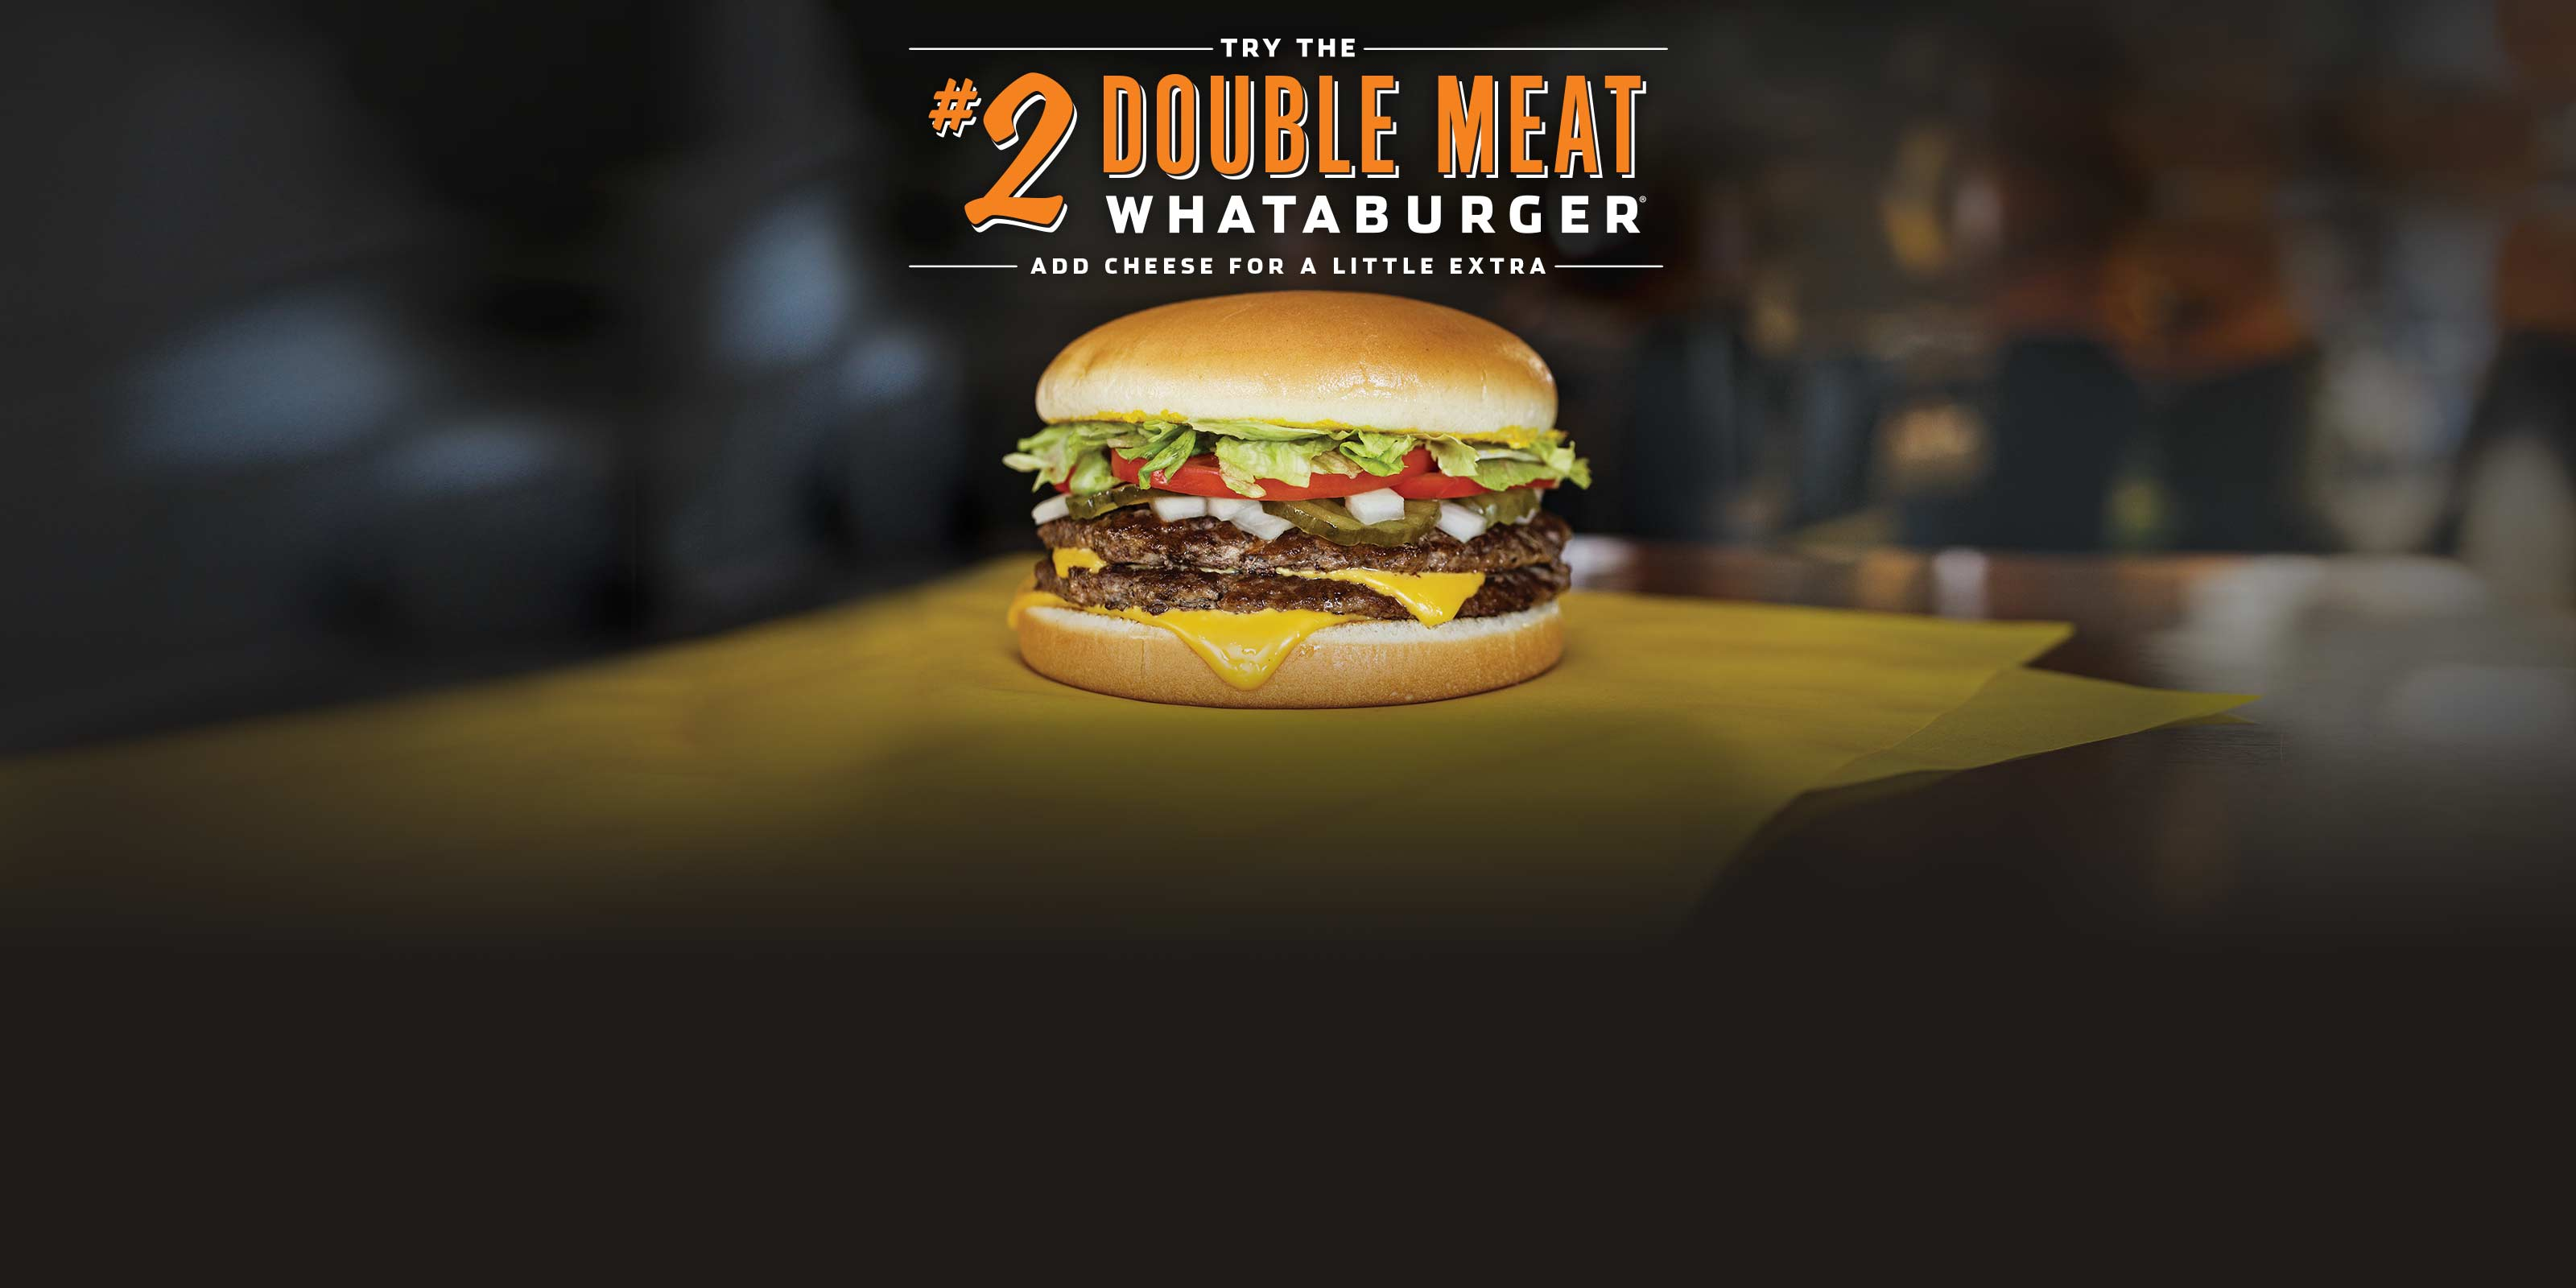 #2 Double Meat Whataburger